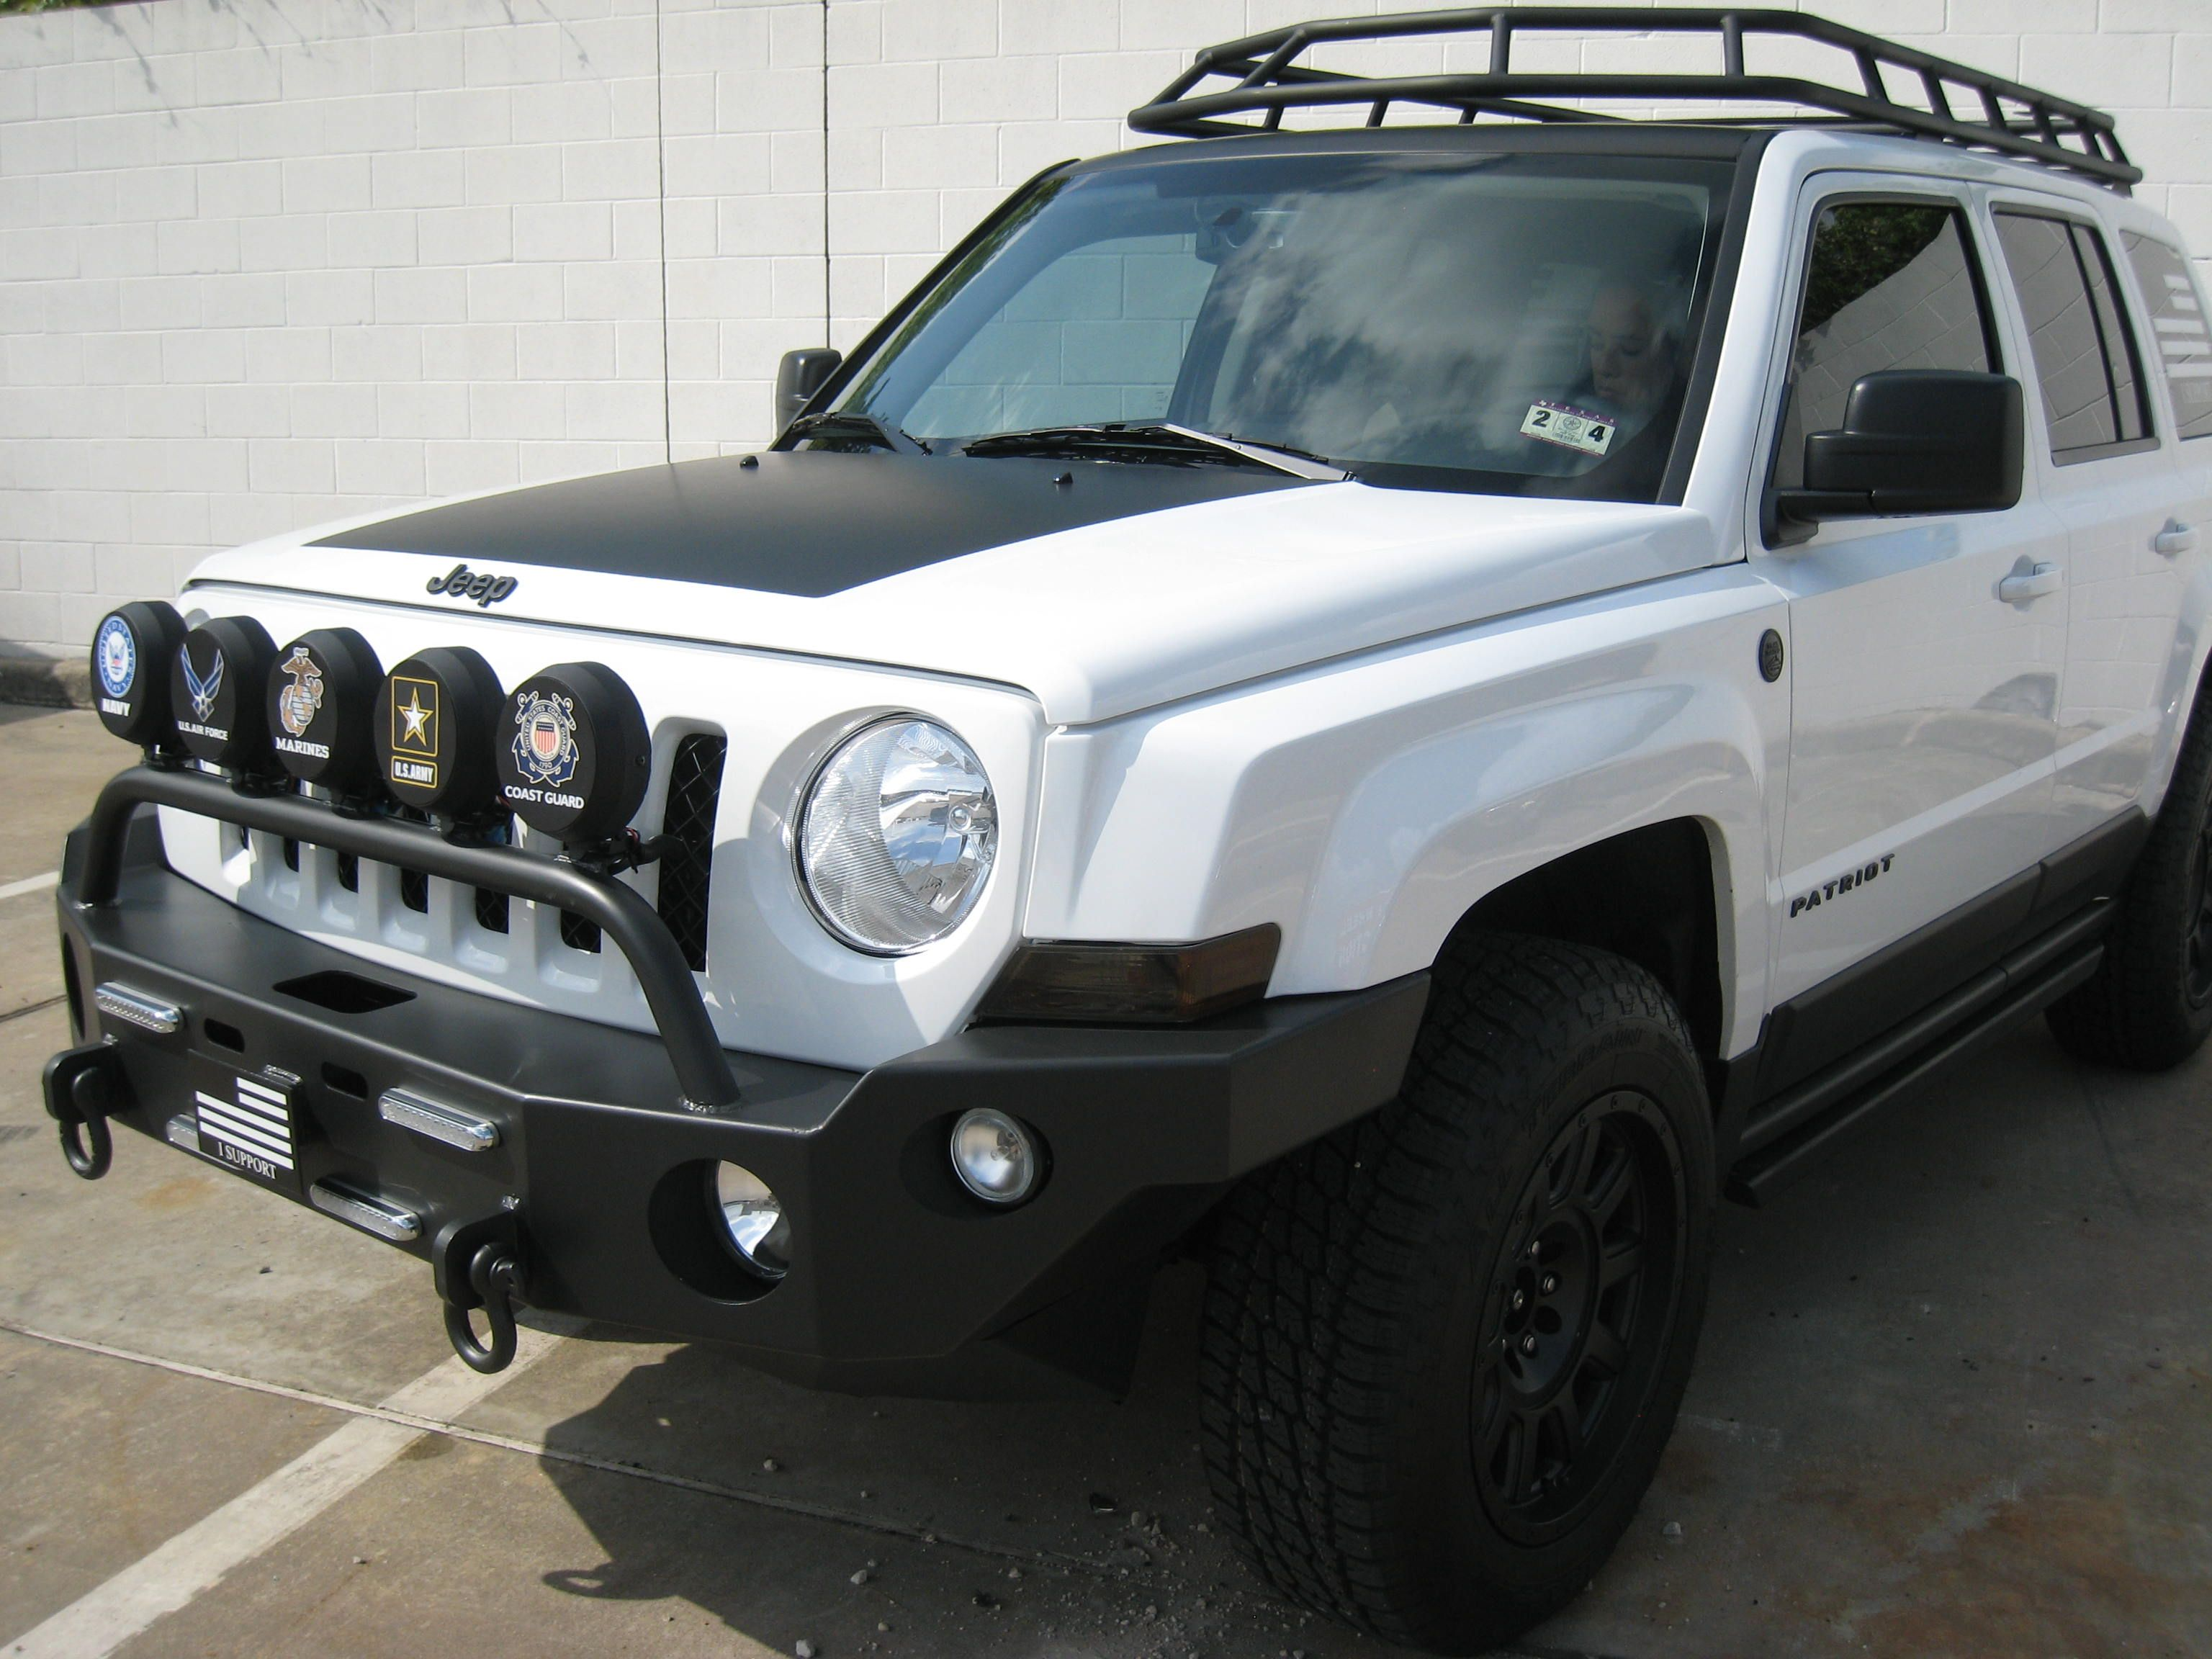 Jeep Patriot Upgrades Tail Light Compase 2012 Jeeps White Sahara Lifted With Tire Carrier And Led Lights Wincher Patriots Pinterest